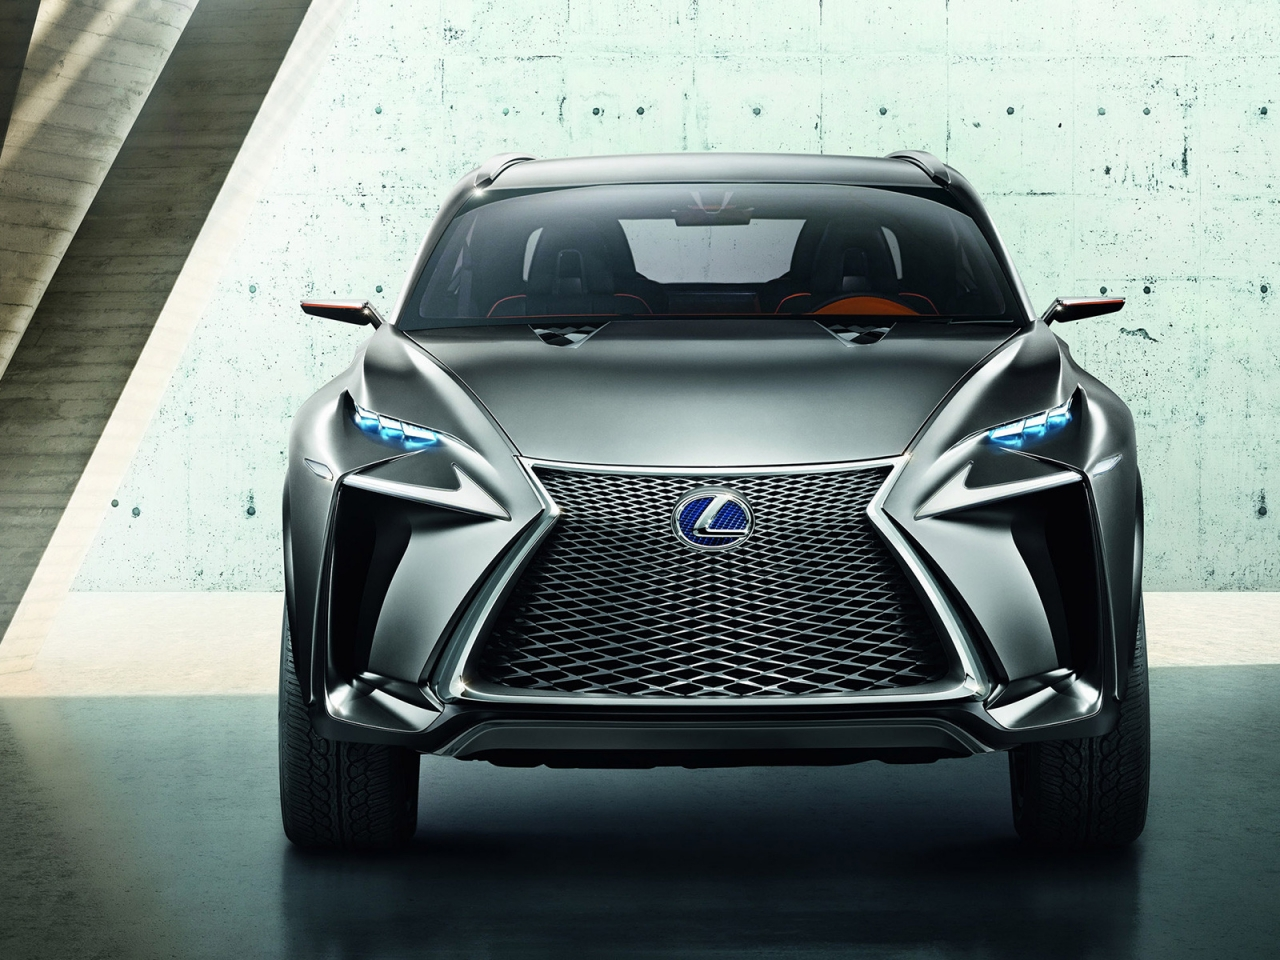 Lexus LF NX Crossover Concept for 1280 x 960 resolution